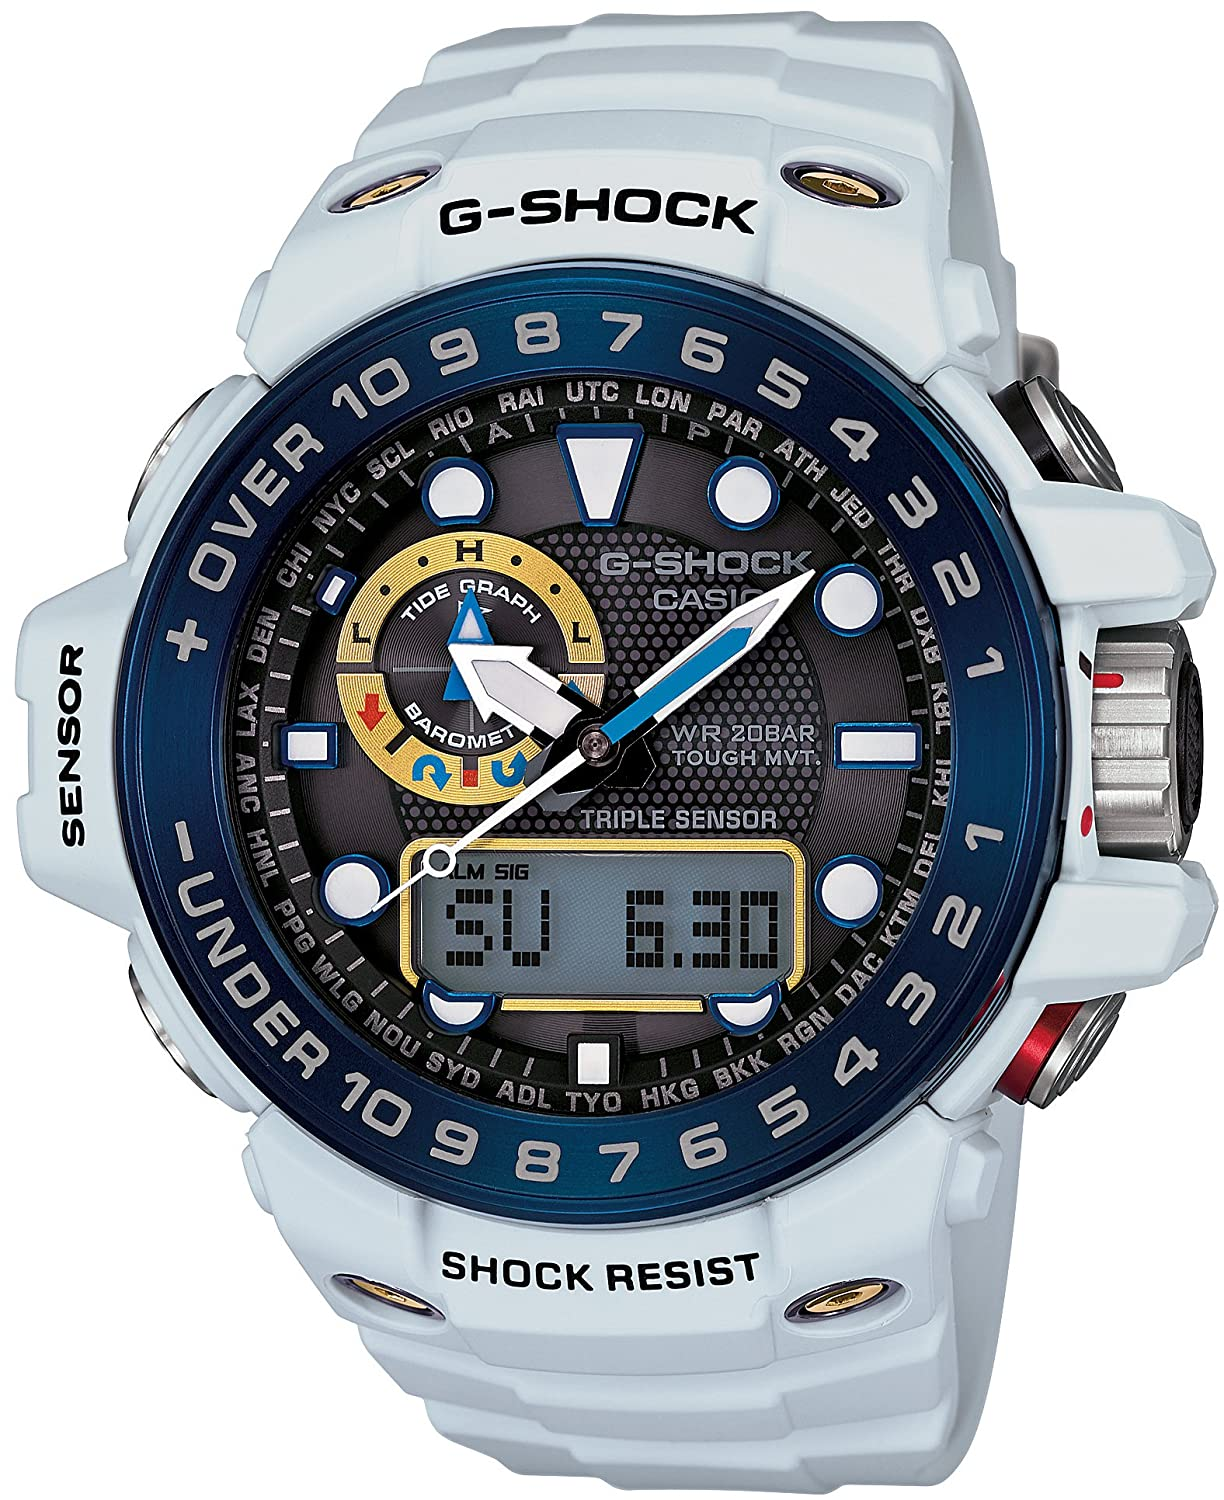 CASIO G-SHOCK GULFMASTER TOUGH MVT. MULTI BAND 6 GWN-1000E-8AJF men's Japan Model casio g shock gulfmaster tough mvt multi band 6 gwn 1000e 8ajf men s japan model